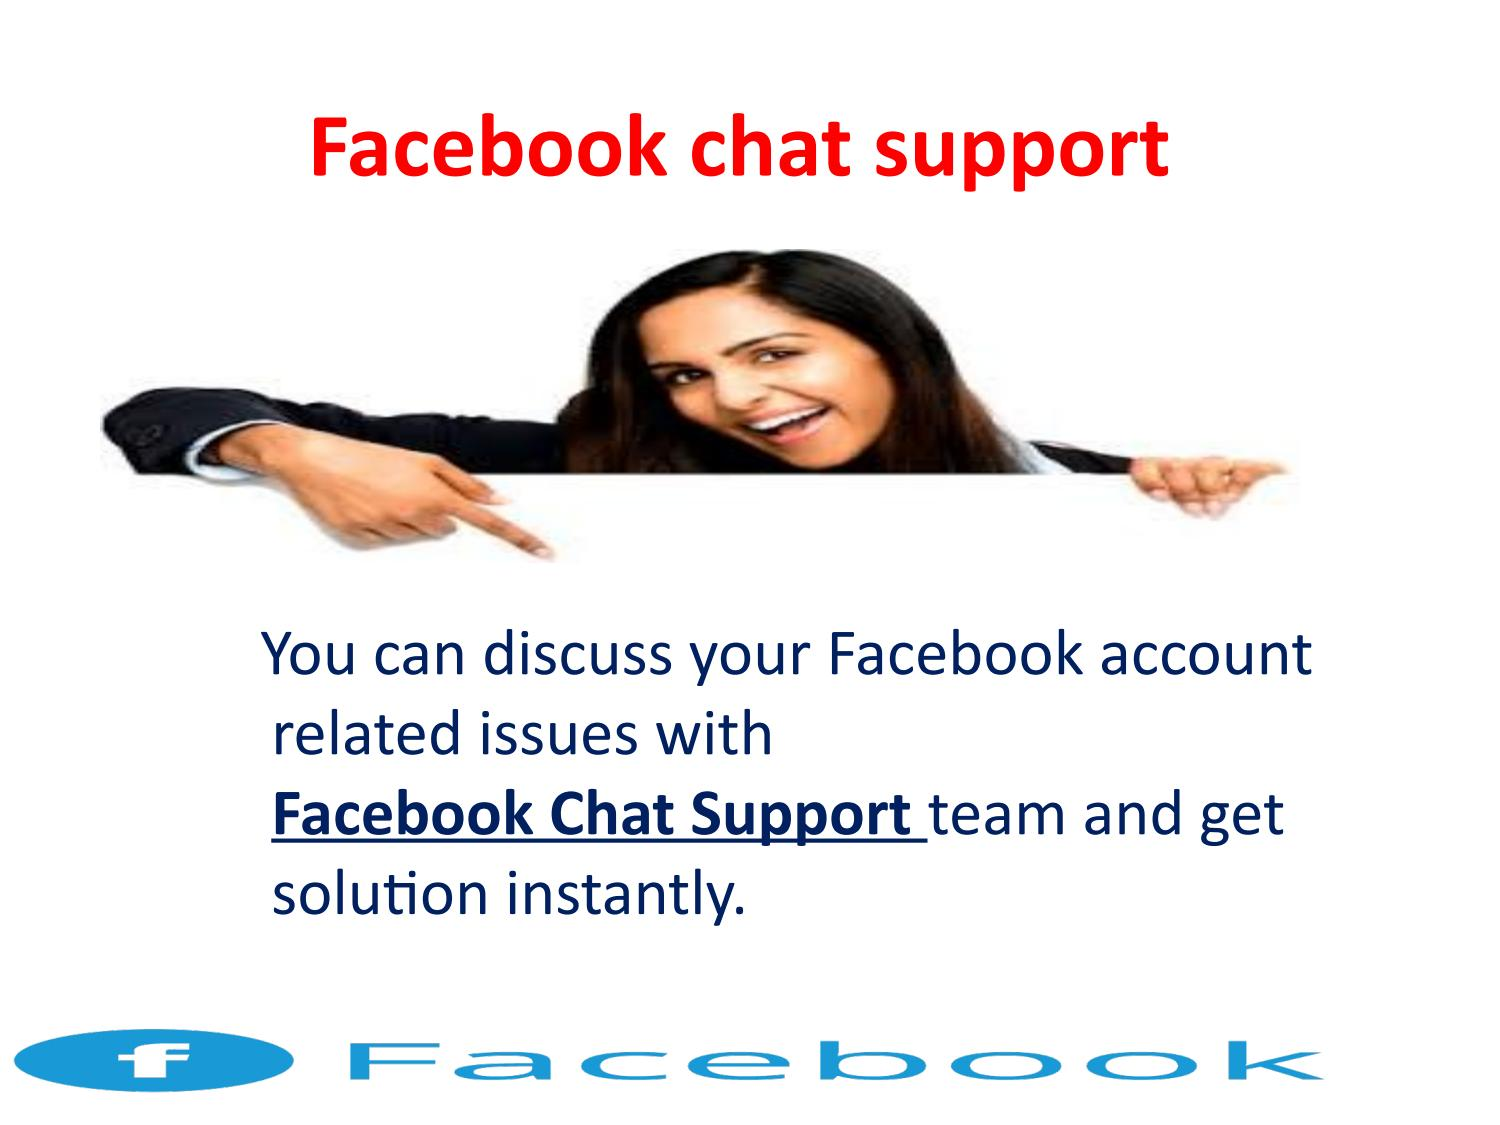 Facebook help desk chat support | Live Service by Angela